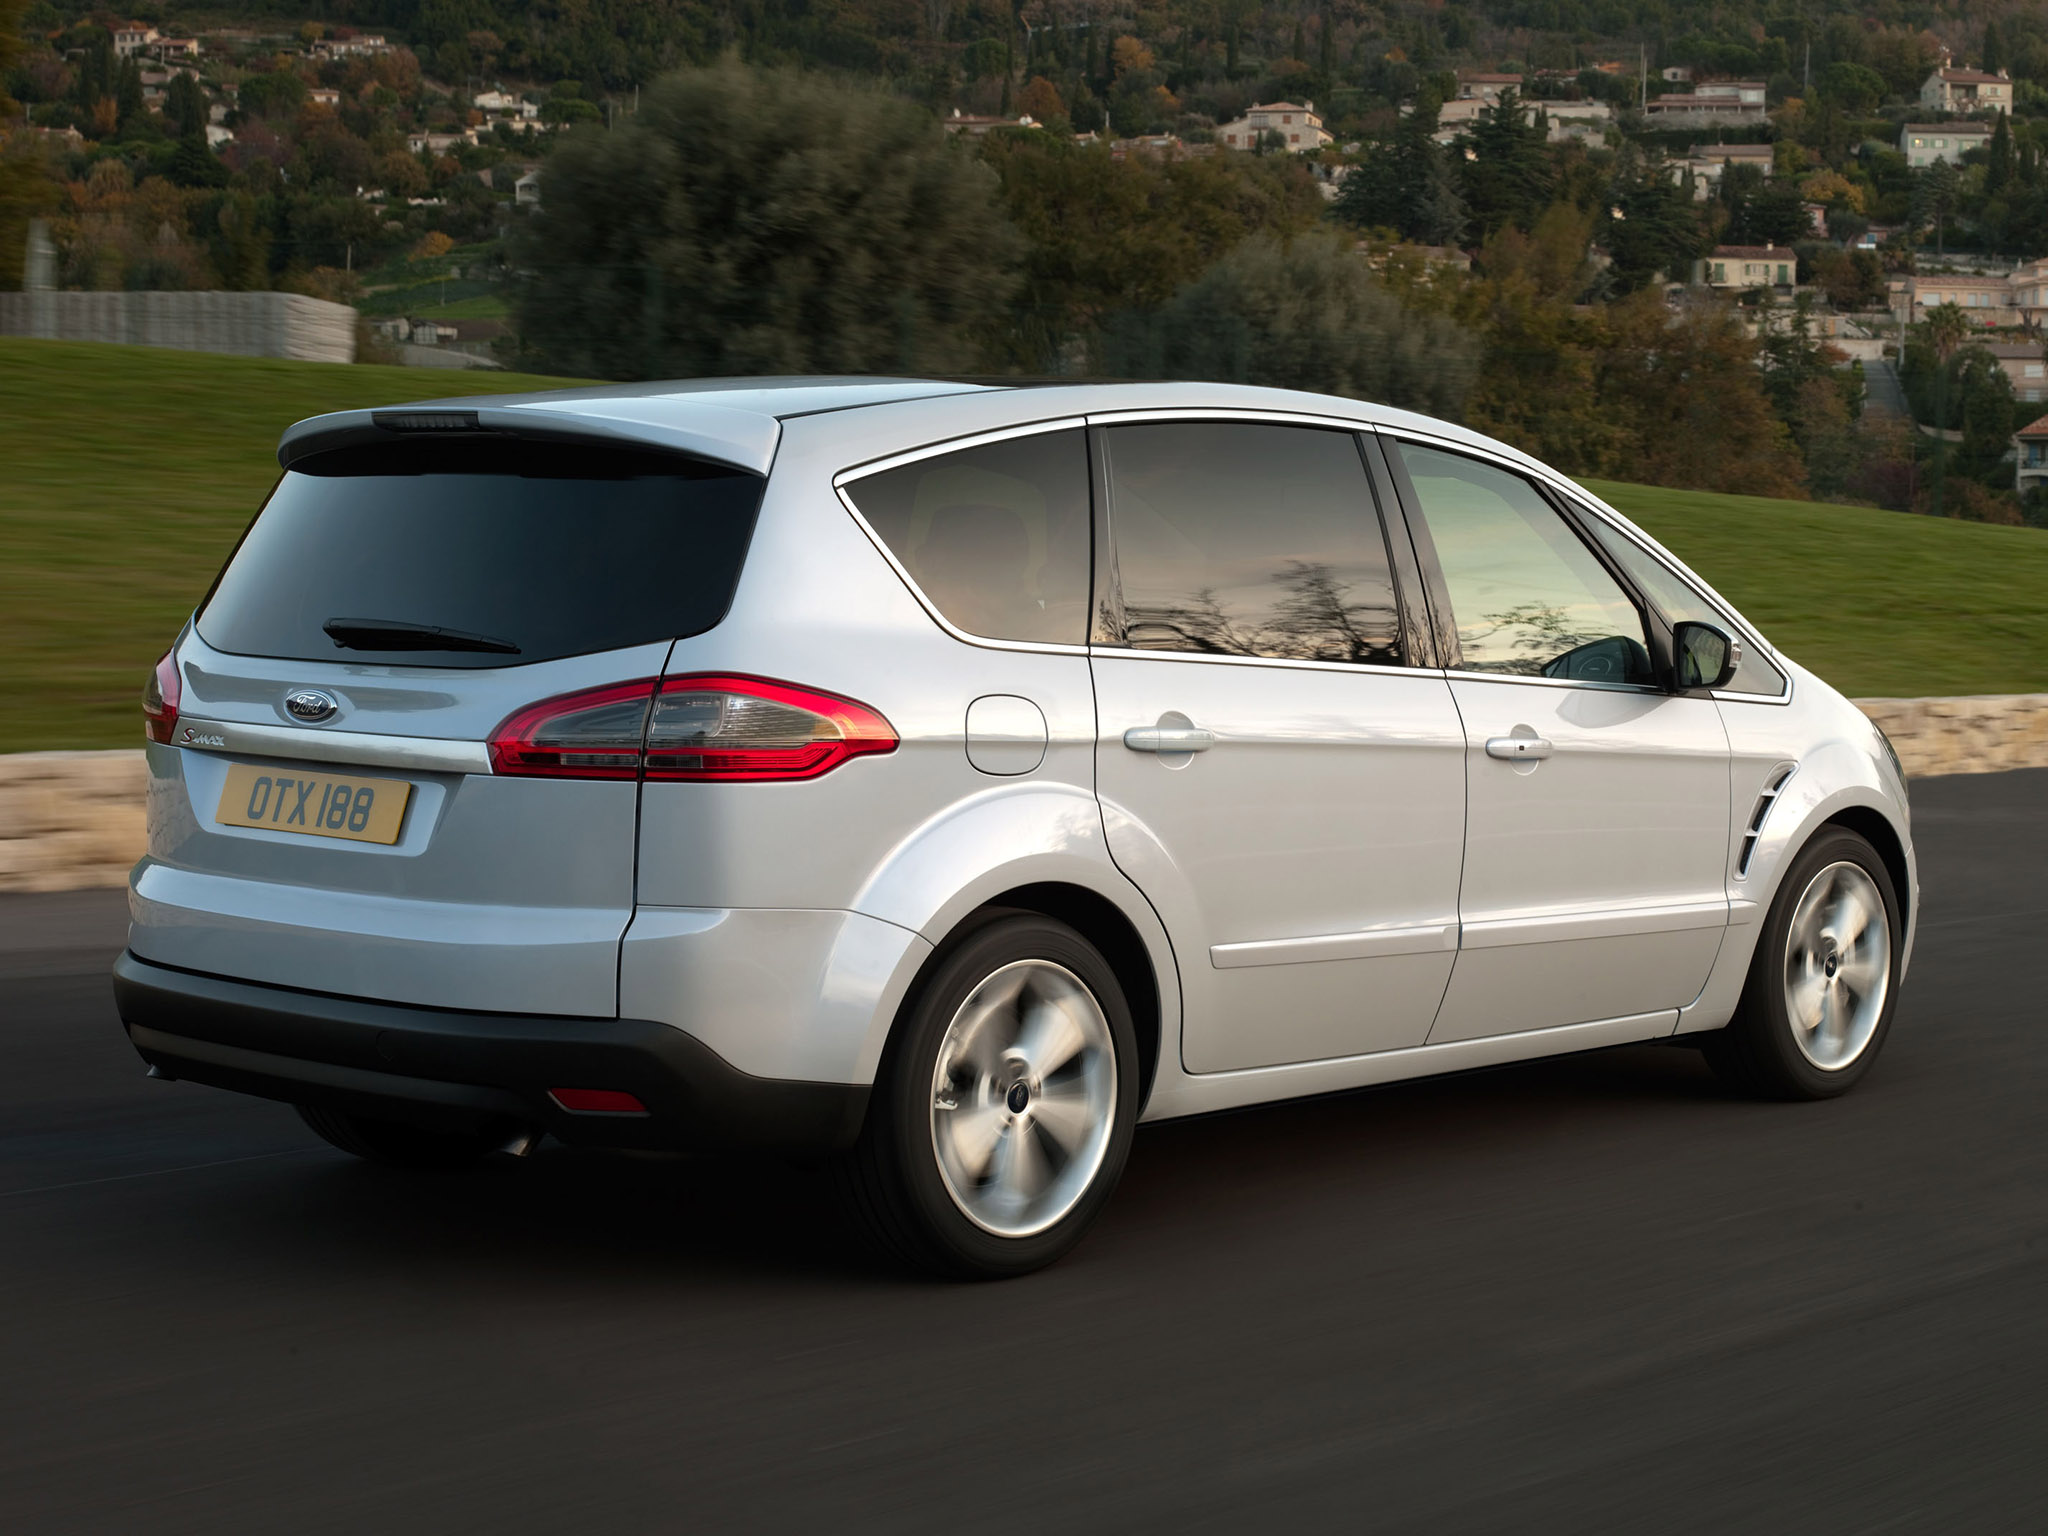 Ford S-Max 2.0 2010 photo - 6